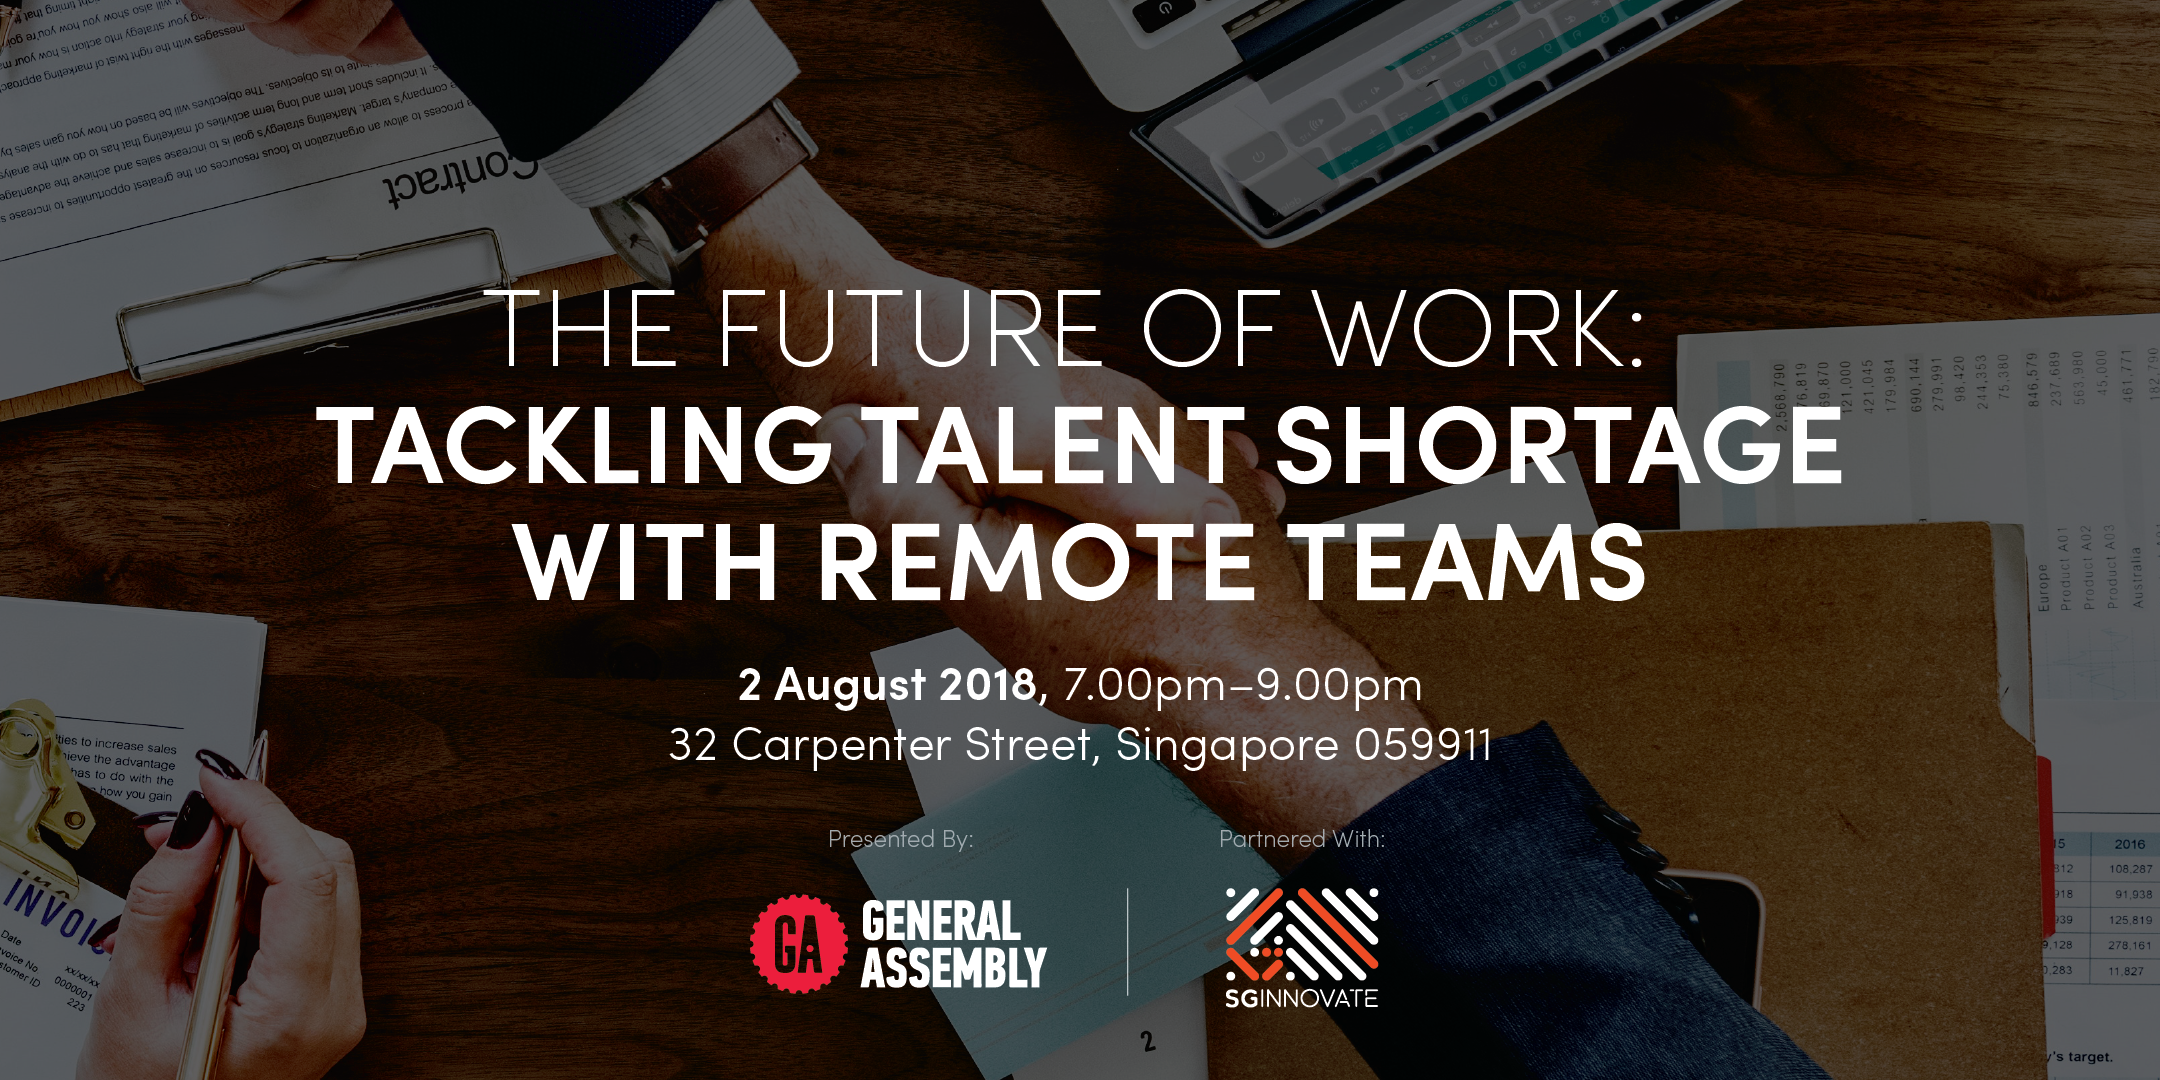 The Future of Work: Tackling Talent Shortage with Remote Teams